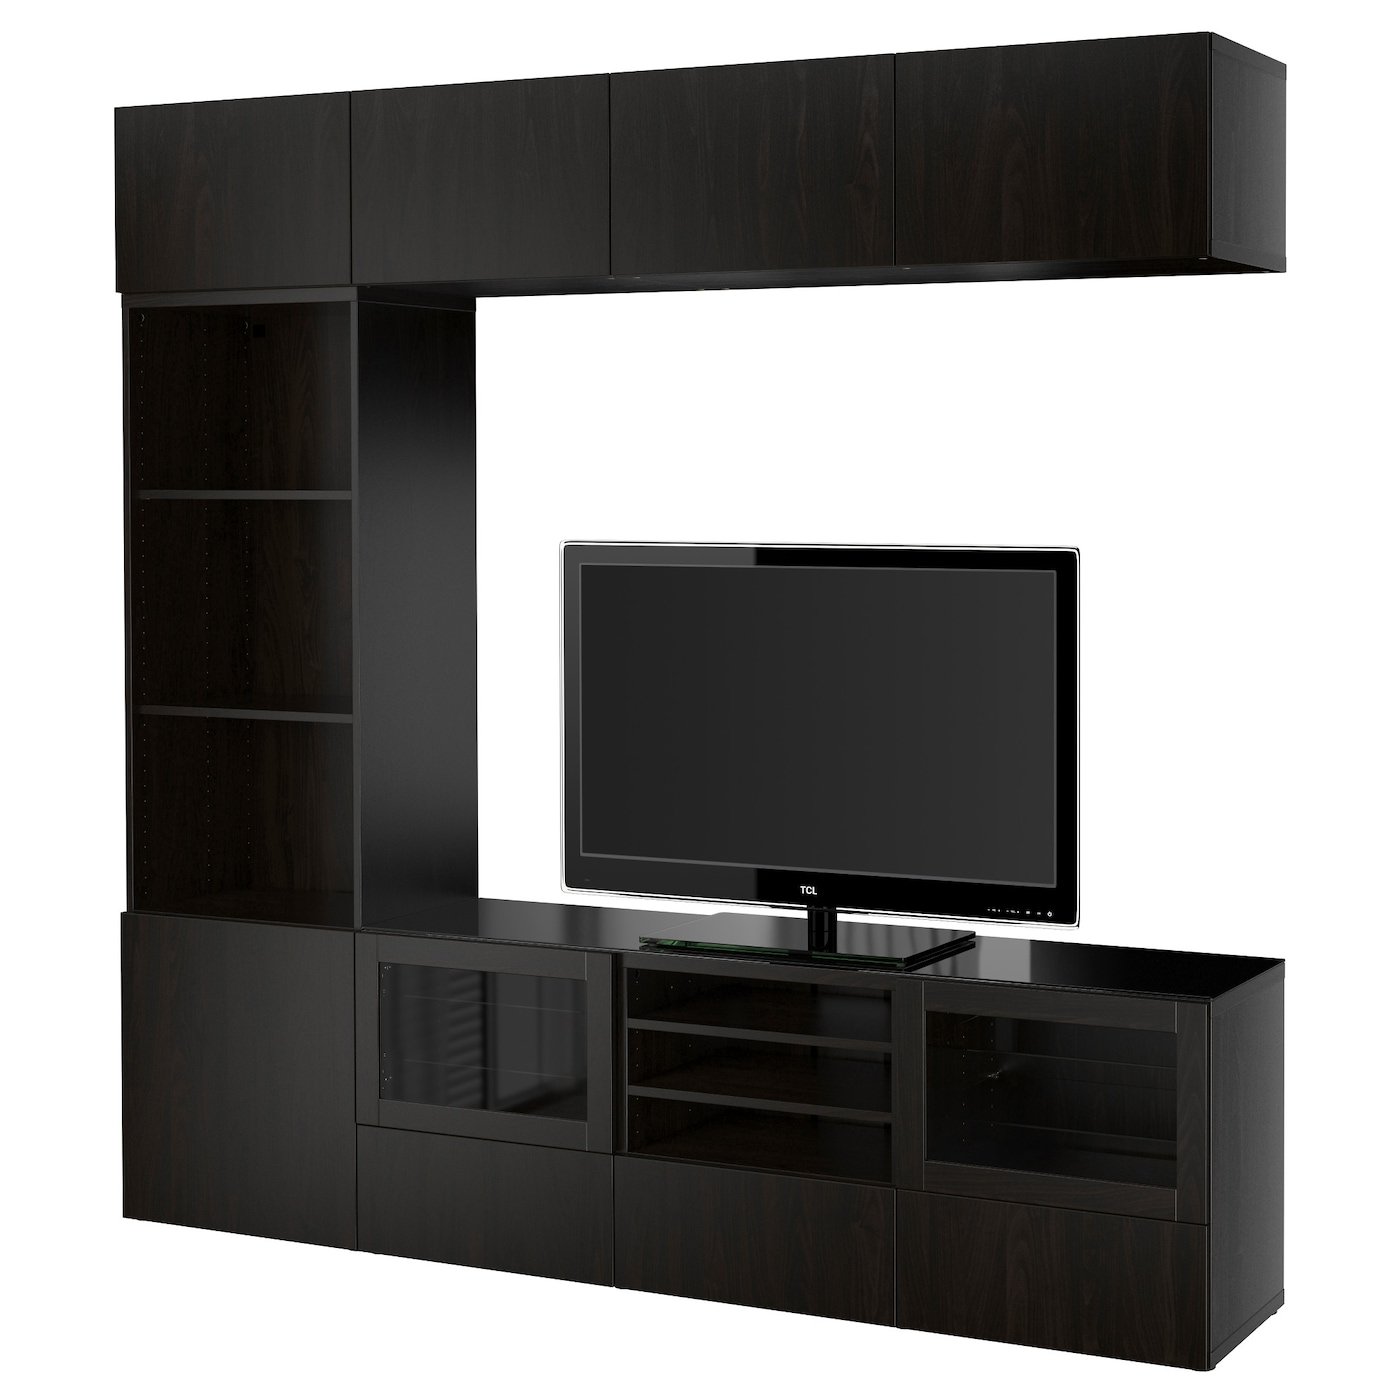 Tv Storage Unit Tv Wall Units Ikea # Meuble Tv Support Mural